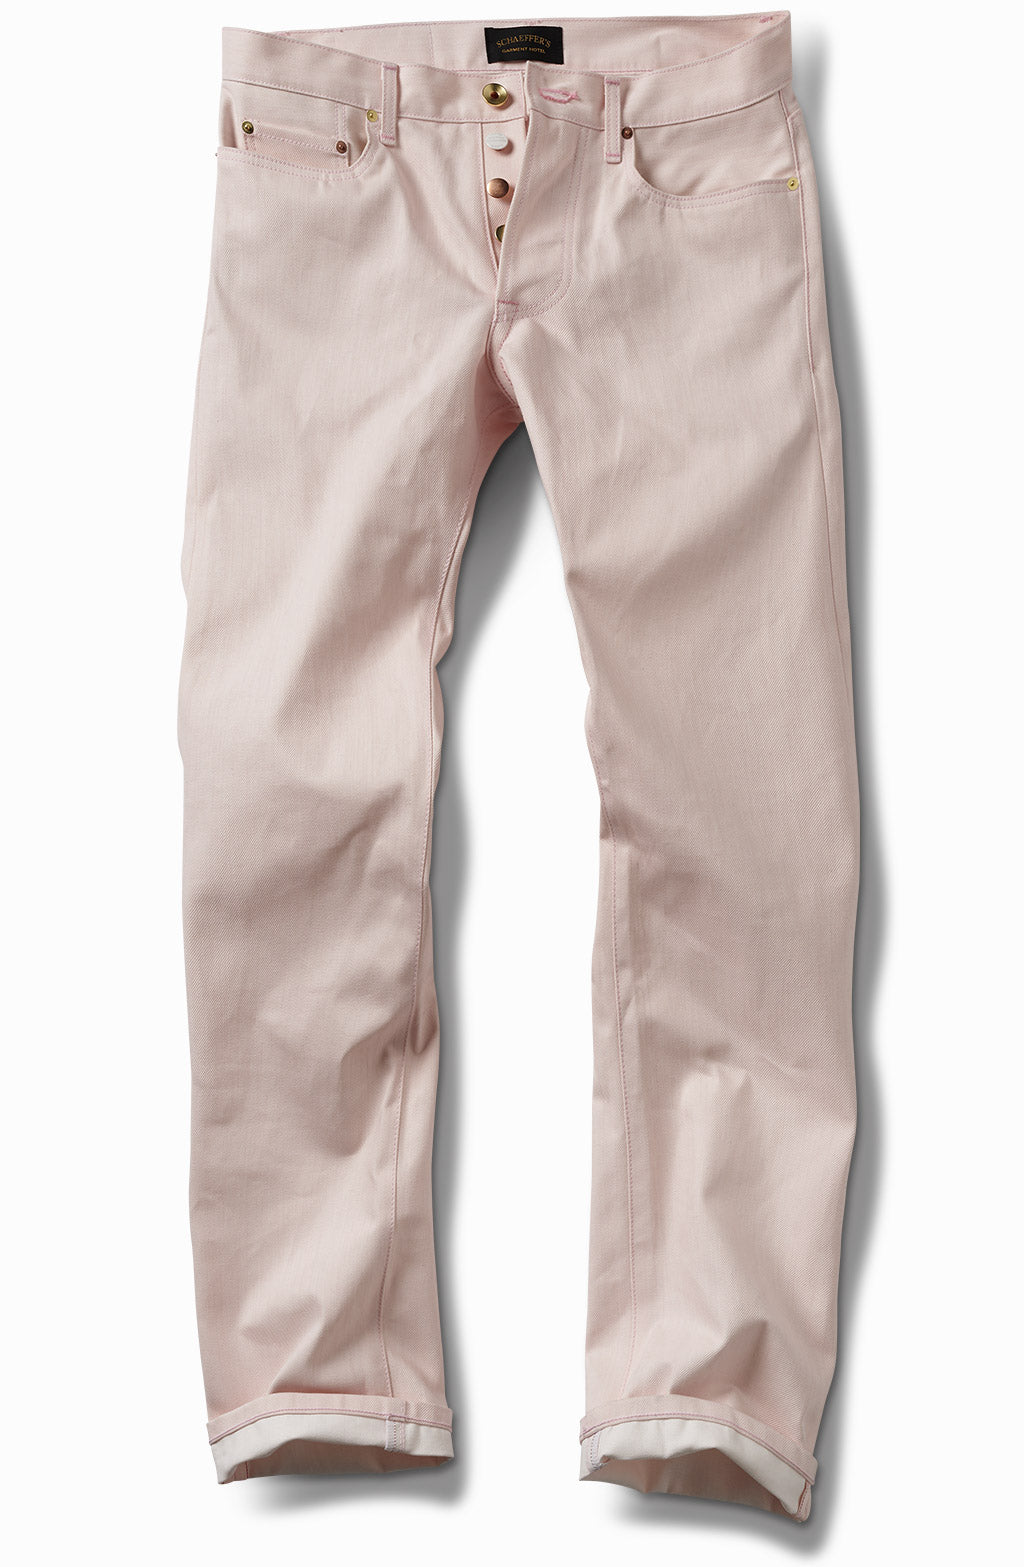 pink over white - tall slim